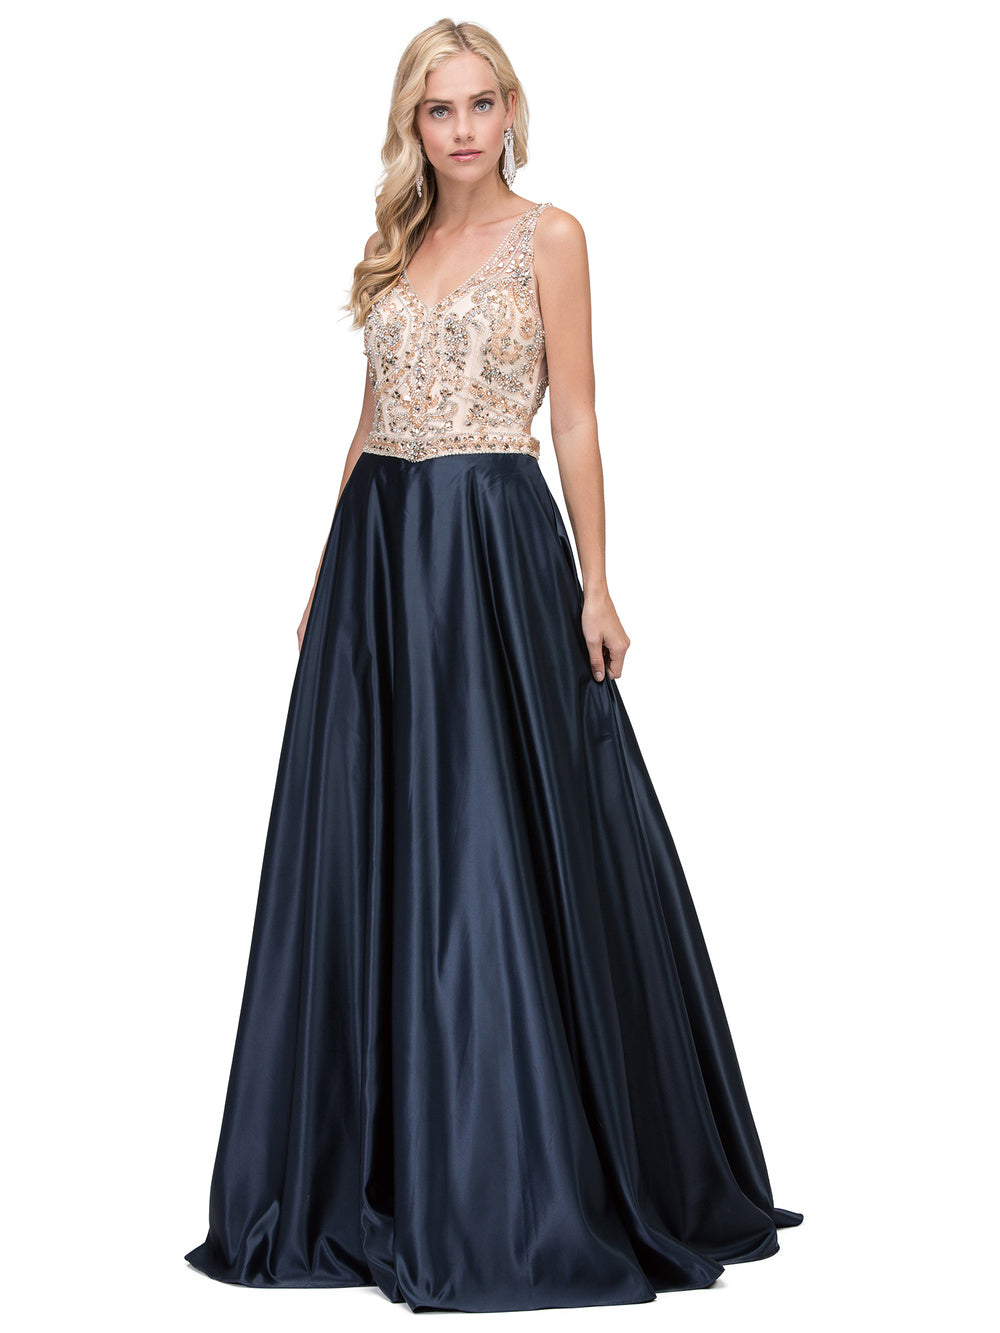 Dancing Queen DQ 2416 - A-Line with Plunging Beaded V-Neck & Satin Skirt - Diggz Prom